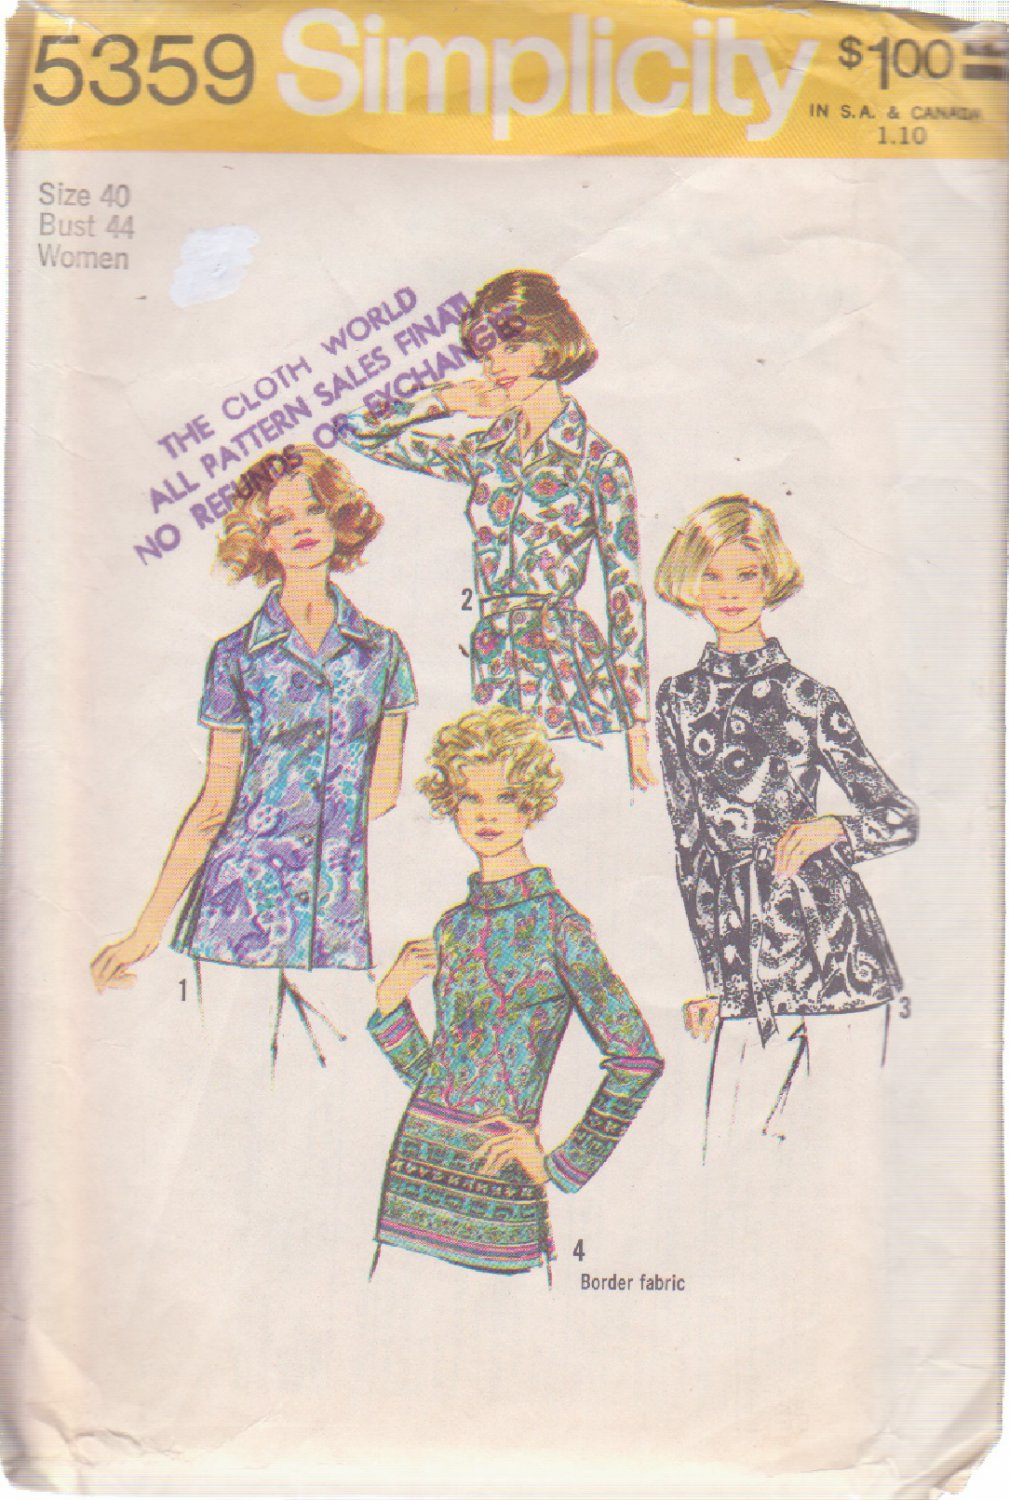 SIMPLICITY 5359 VINTAGE PATTERN MISSES' BLOUSES IN 4 VARIATIONS SIZE 40